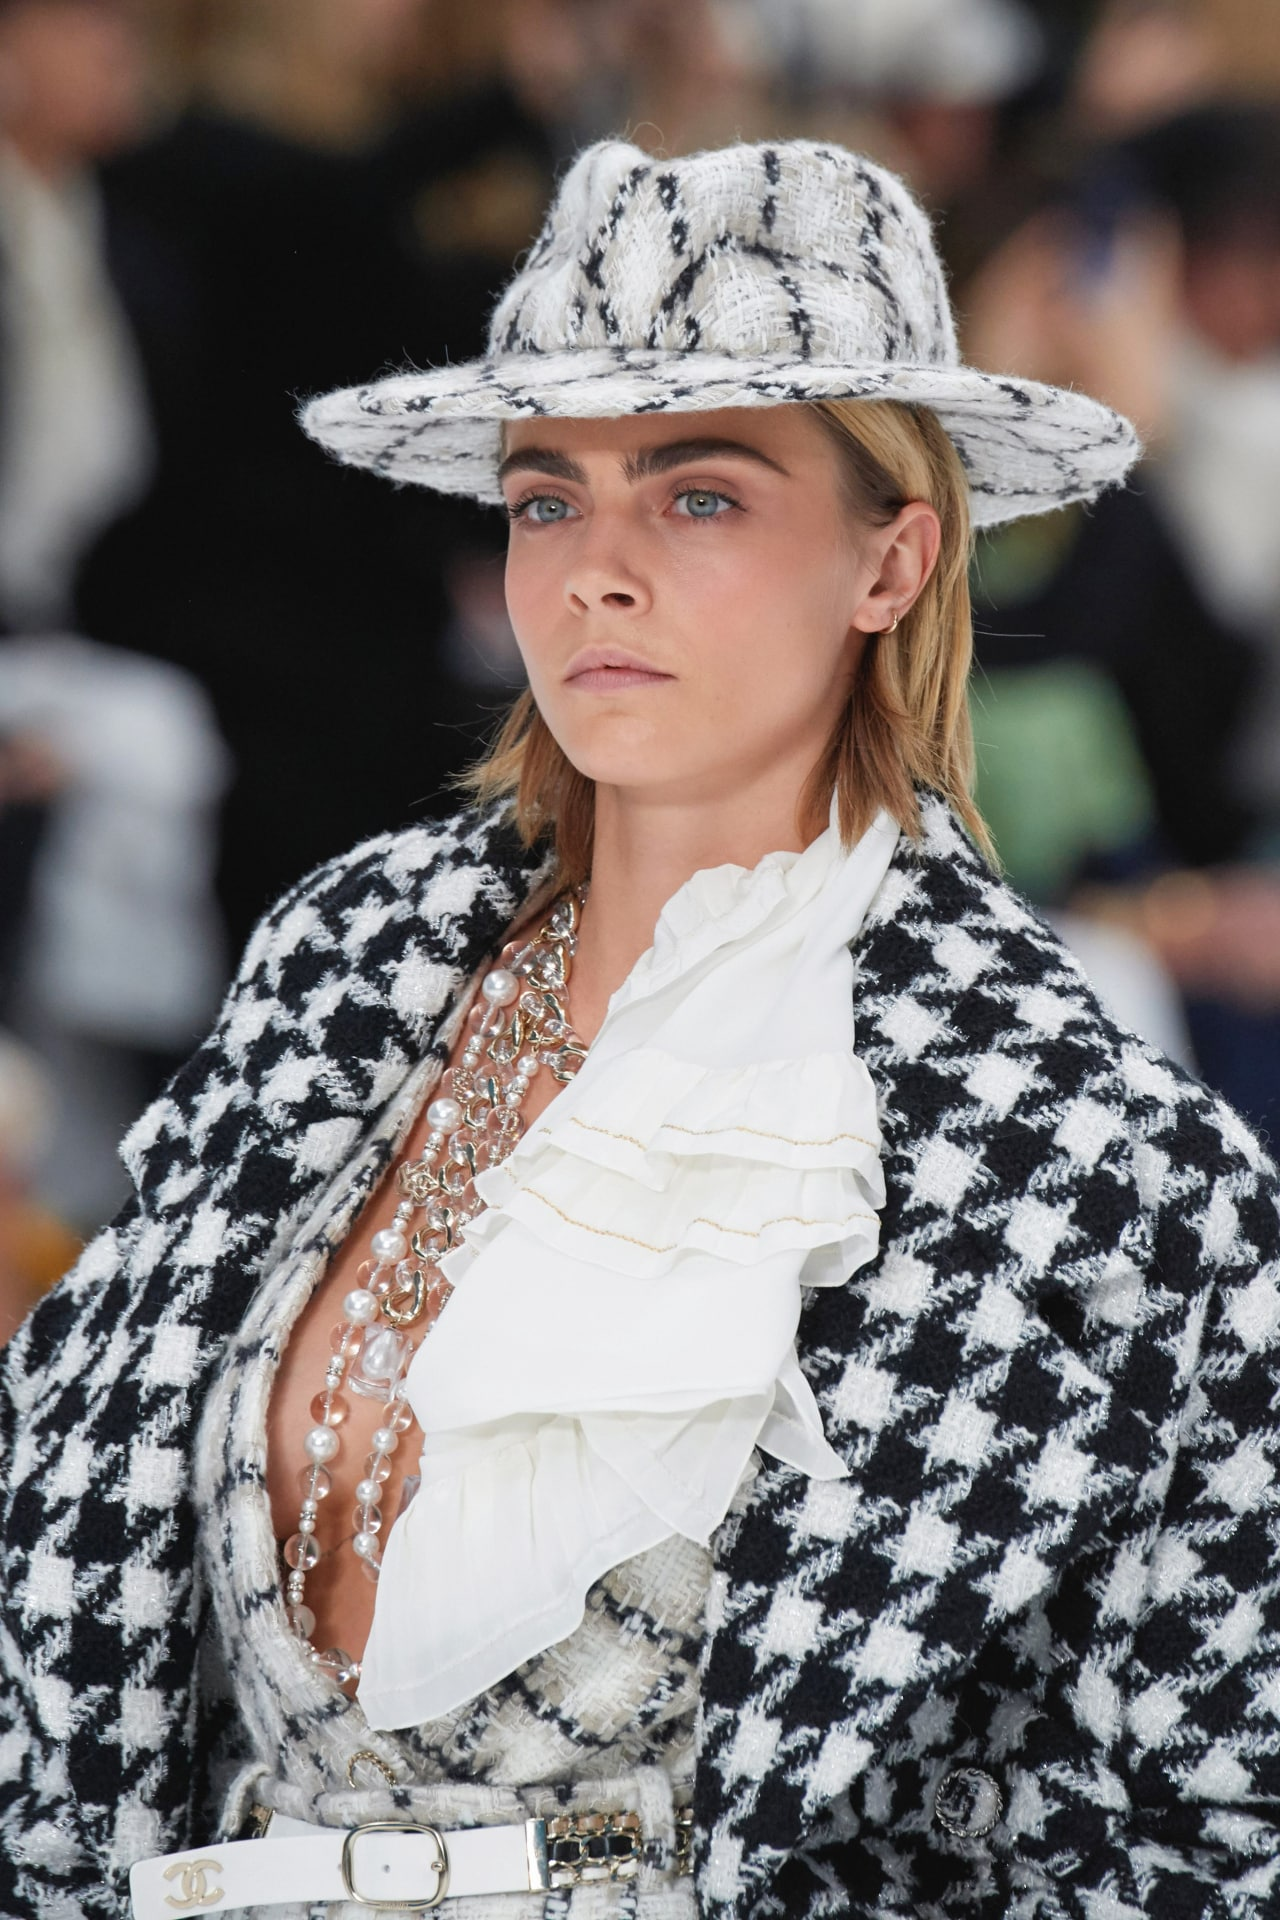 5 things to know about Karl Lagerfeld's final show for Chanel